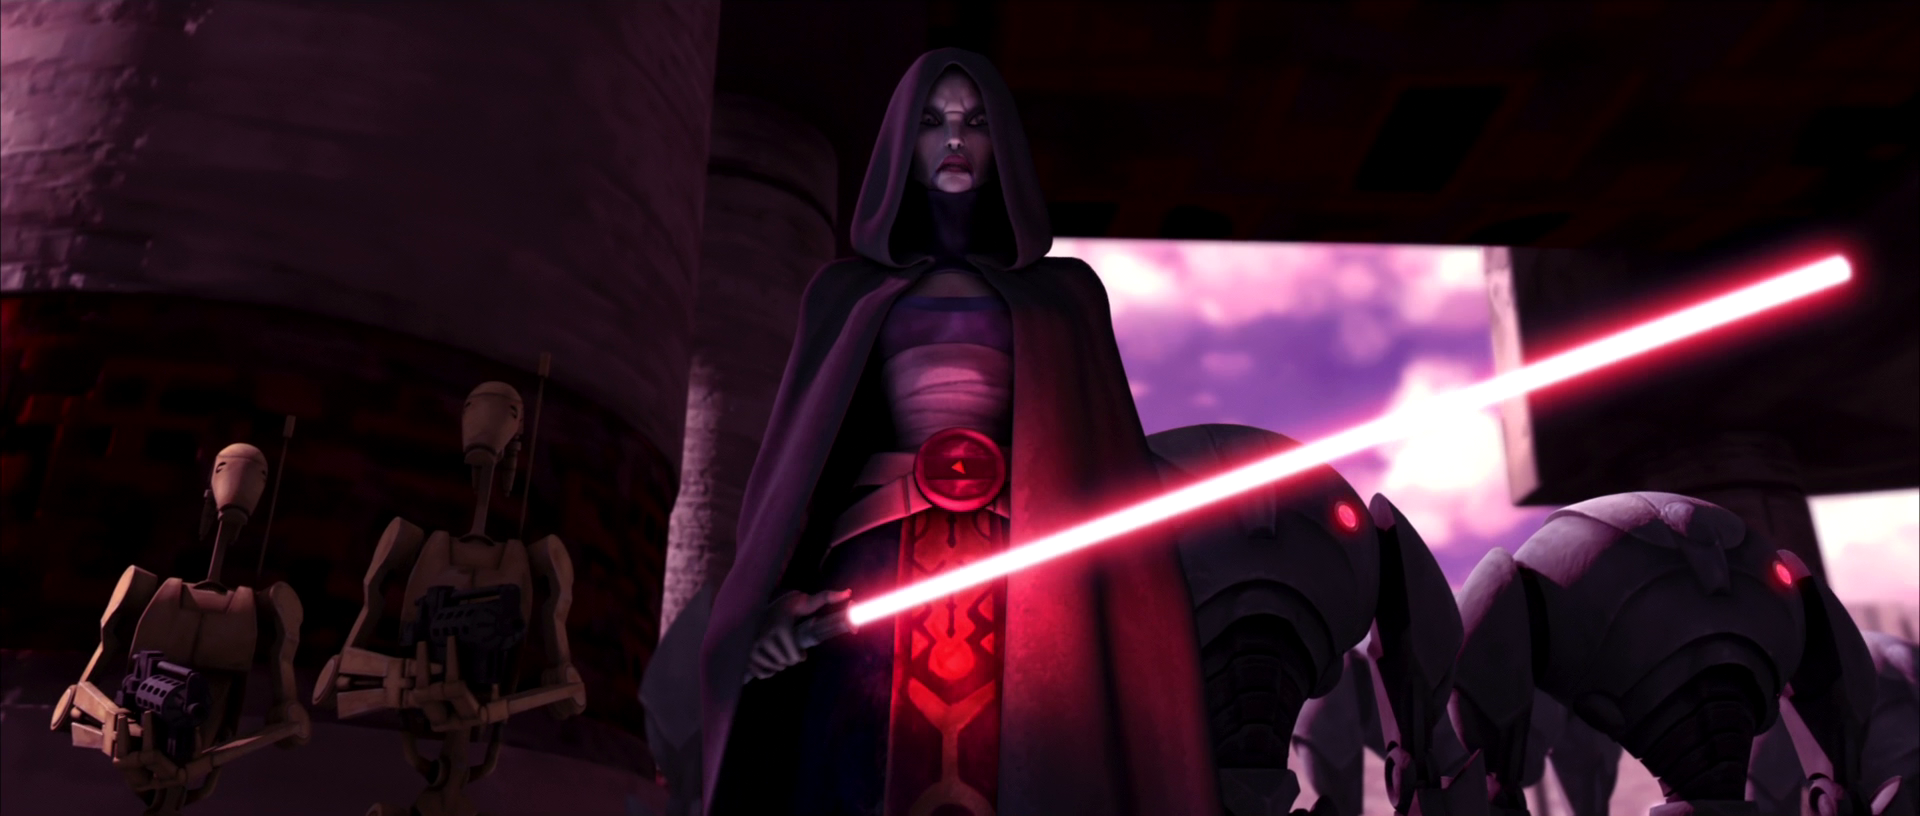 Asajj Ventress on Teth - starwars.wikia.com